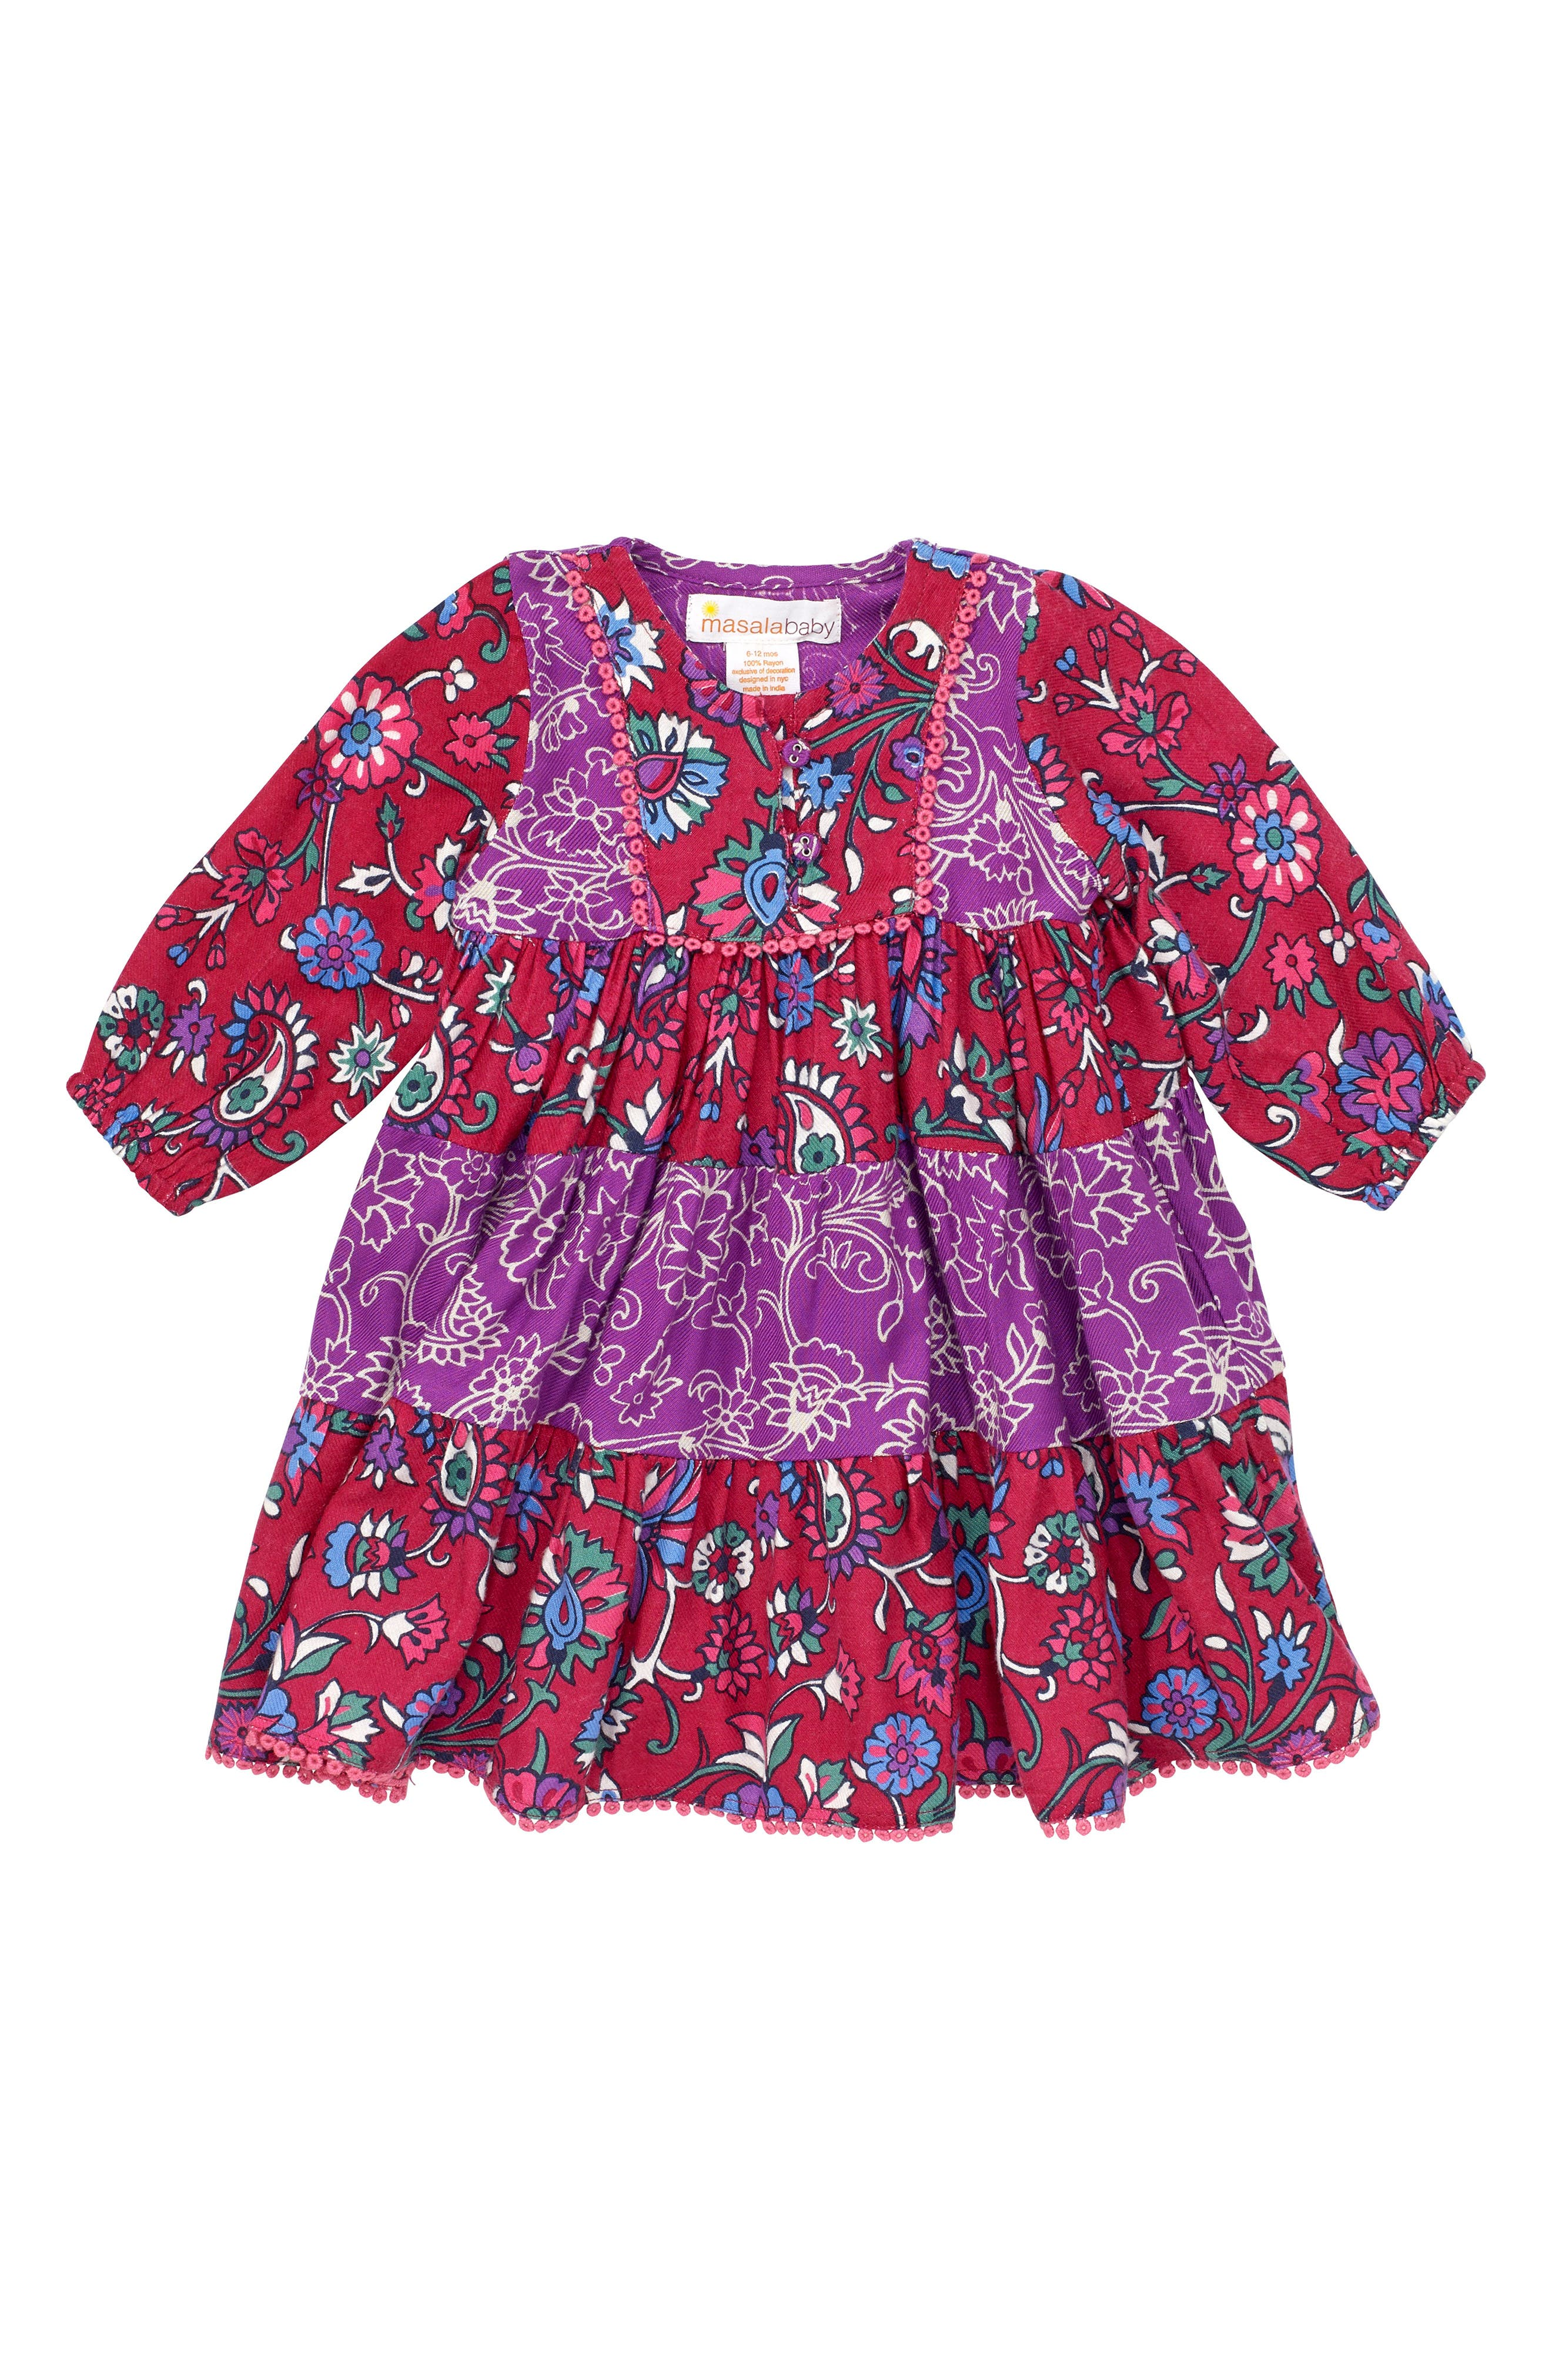 Tiered Floral Dress,                             Main thumbnail 1, color,                             Multi